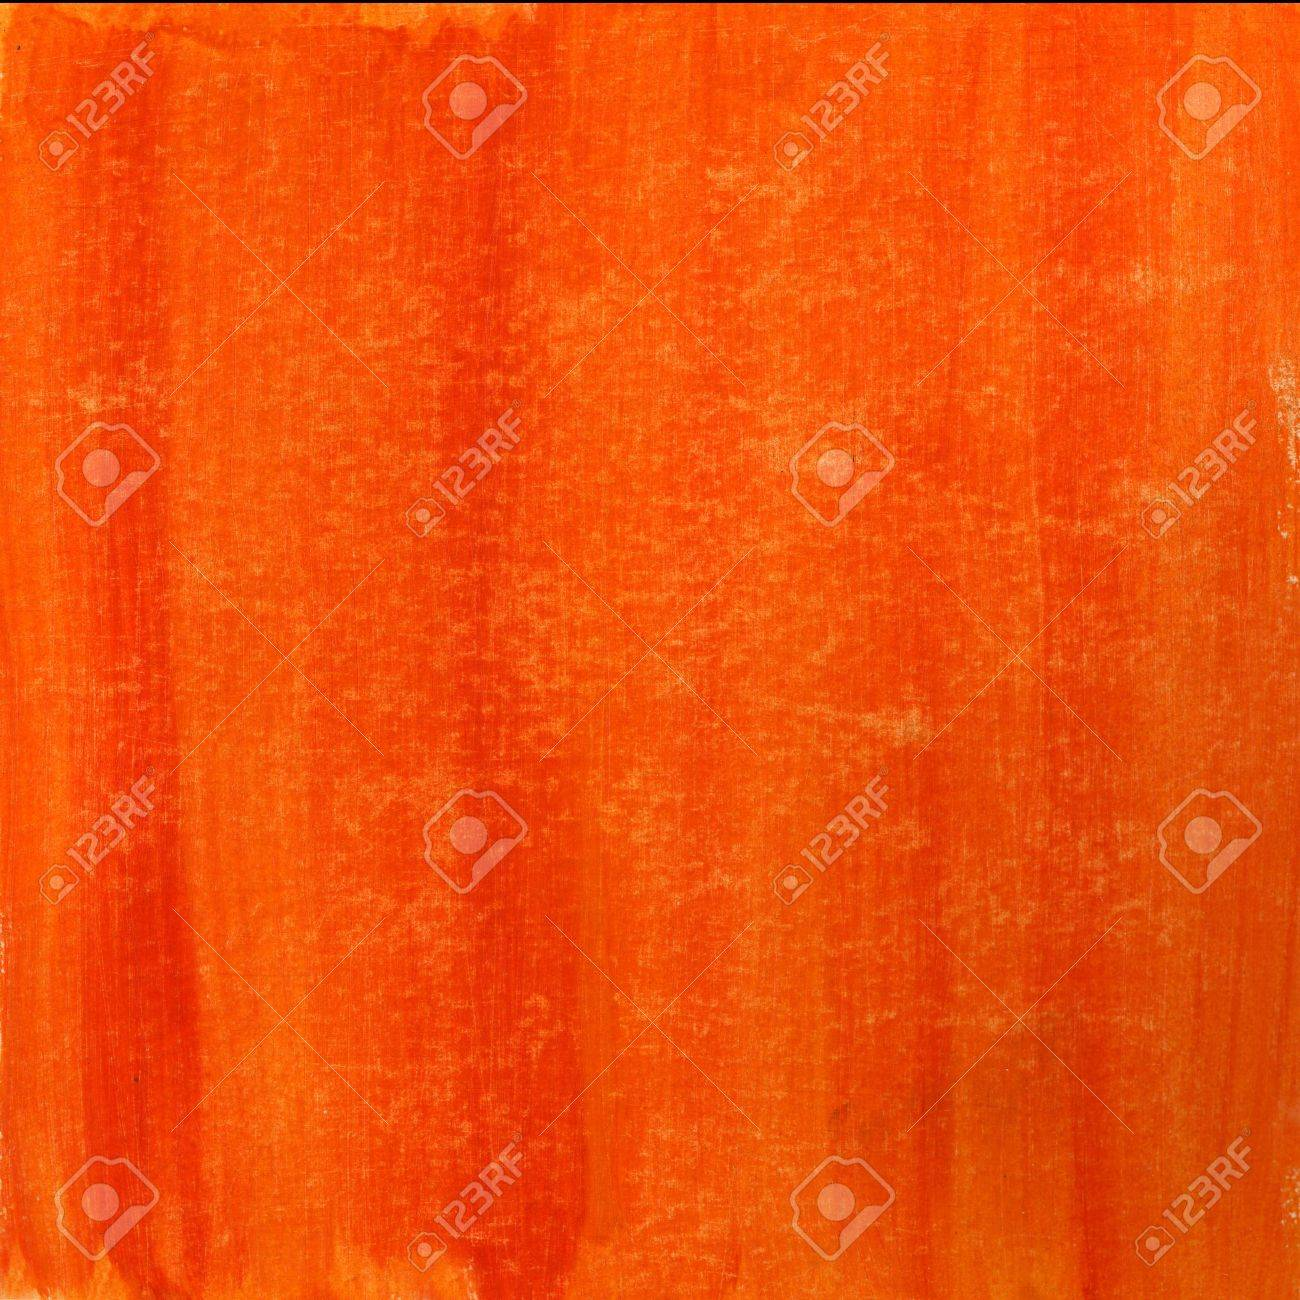 Red Orange Hand Painted Watercolor Abstract Witch Scratch Texture Self Made Stock Photo